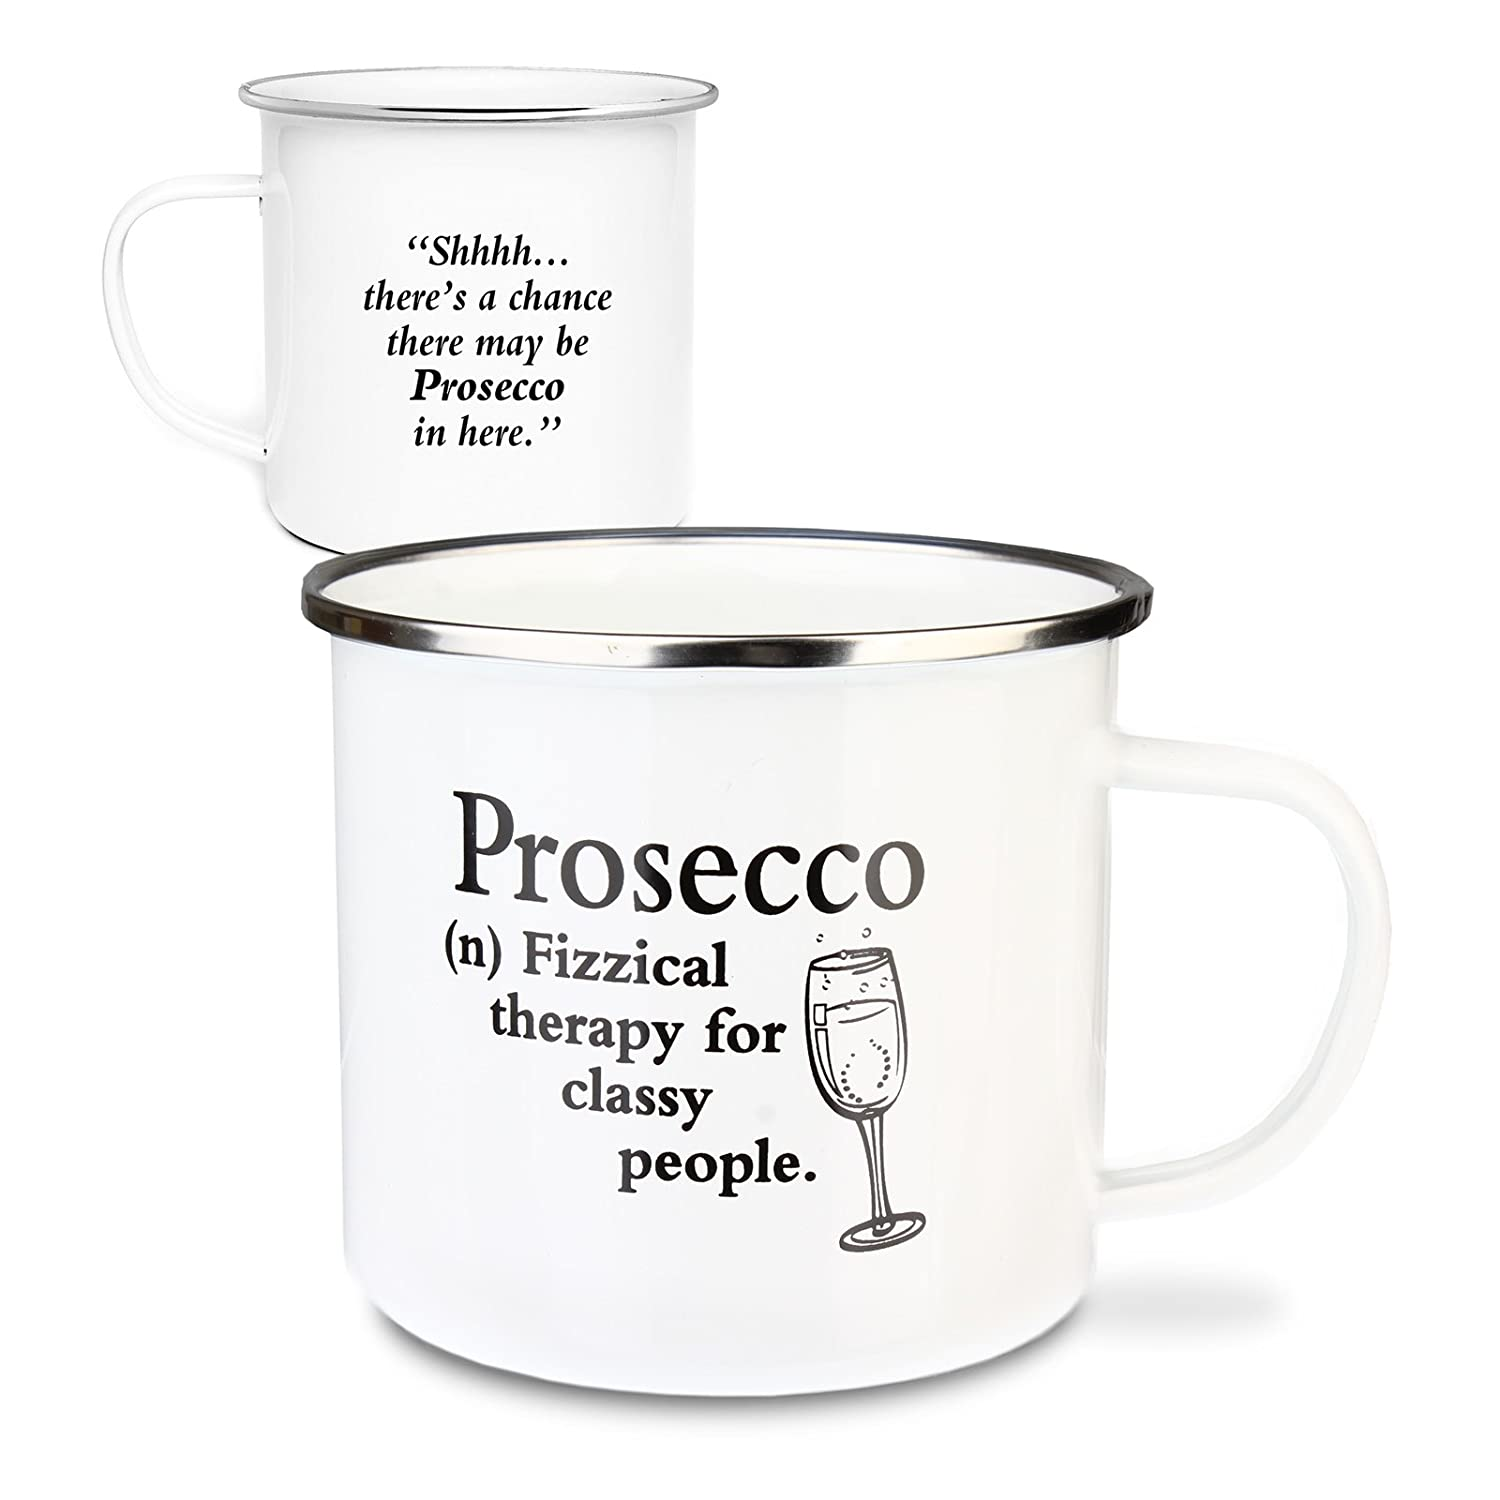 Urban Words Tin Mug'Prosecco' Title and Slang Words Including Meaning. History & Heraldry